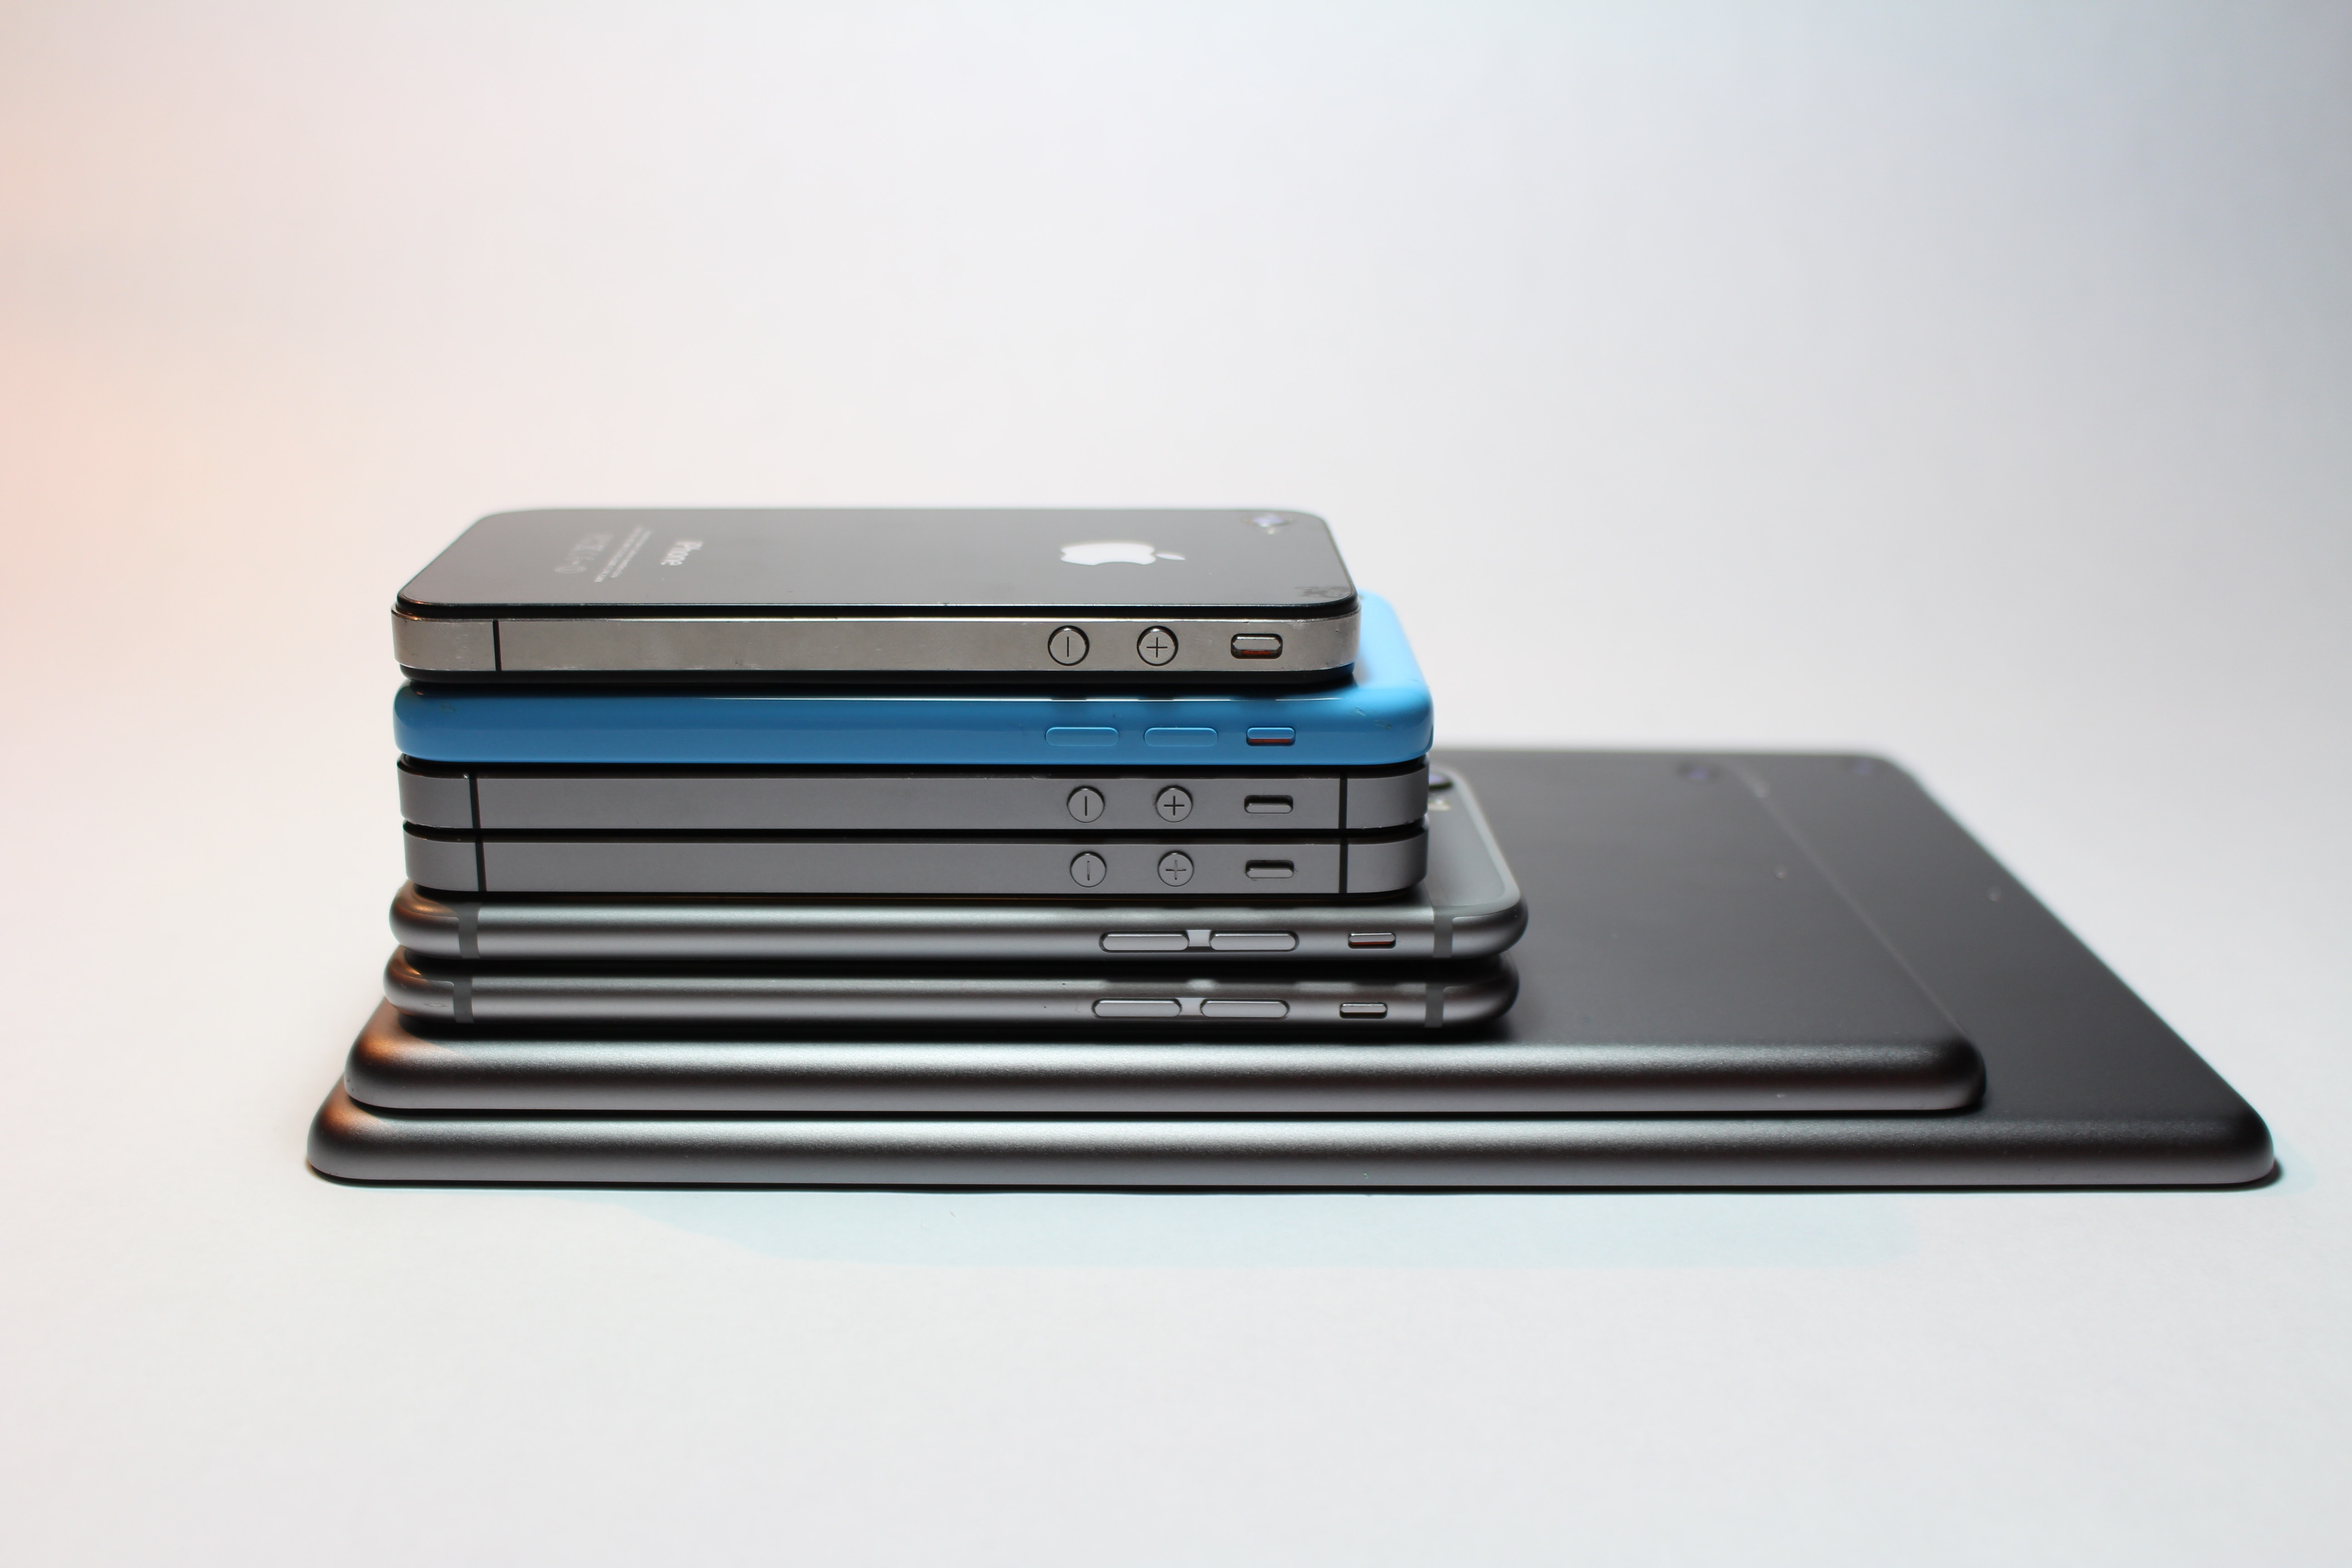 apple-devices-cellphone-close-up-341523